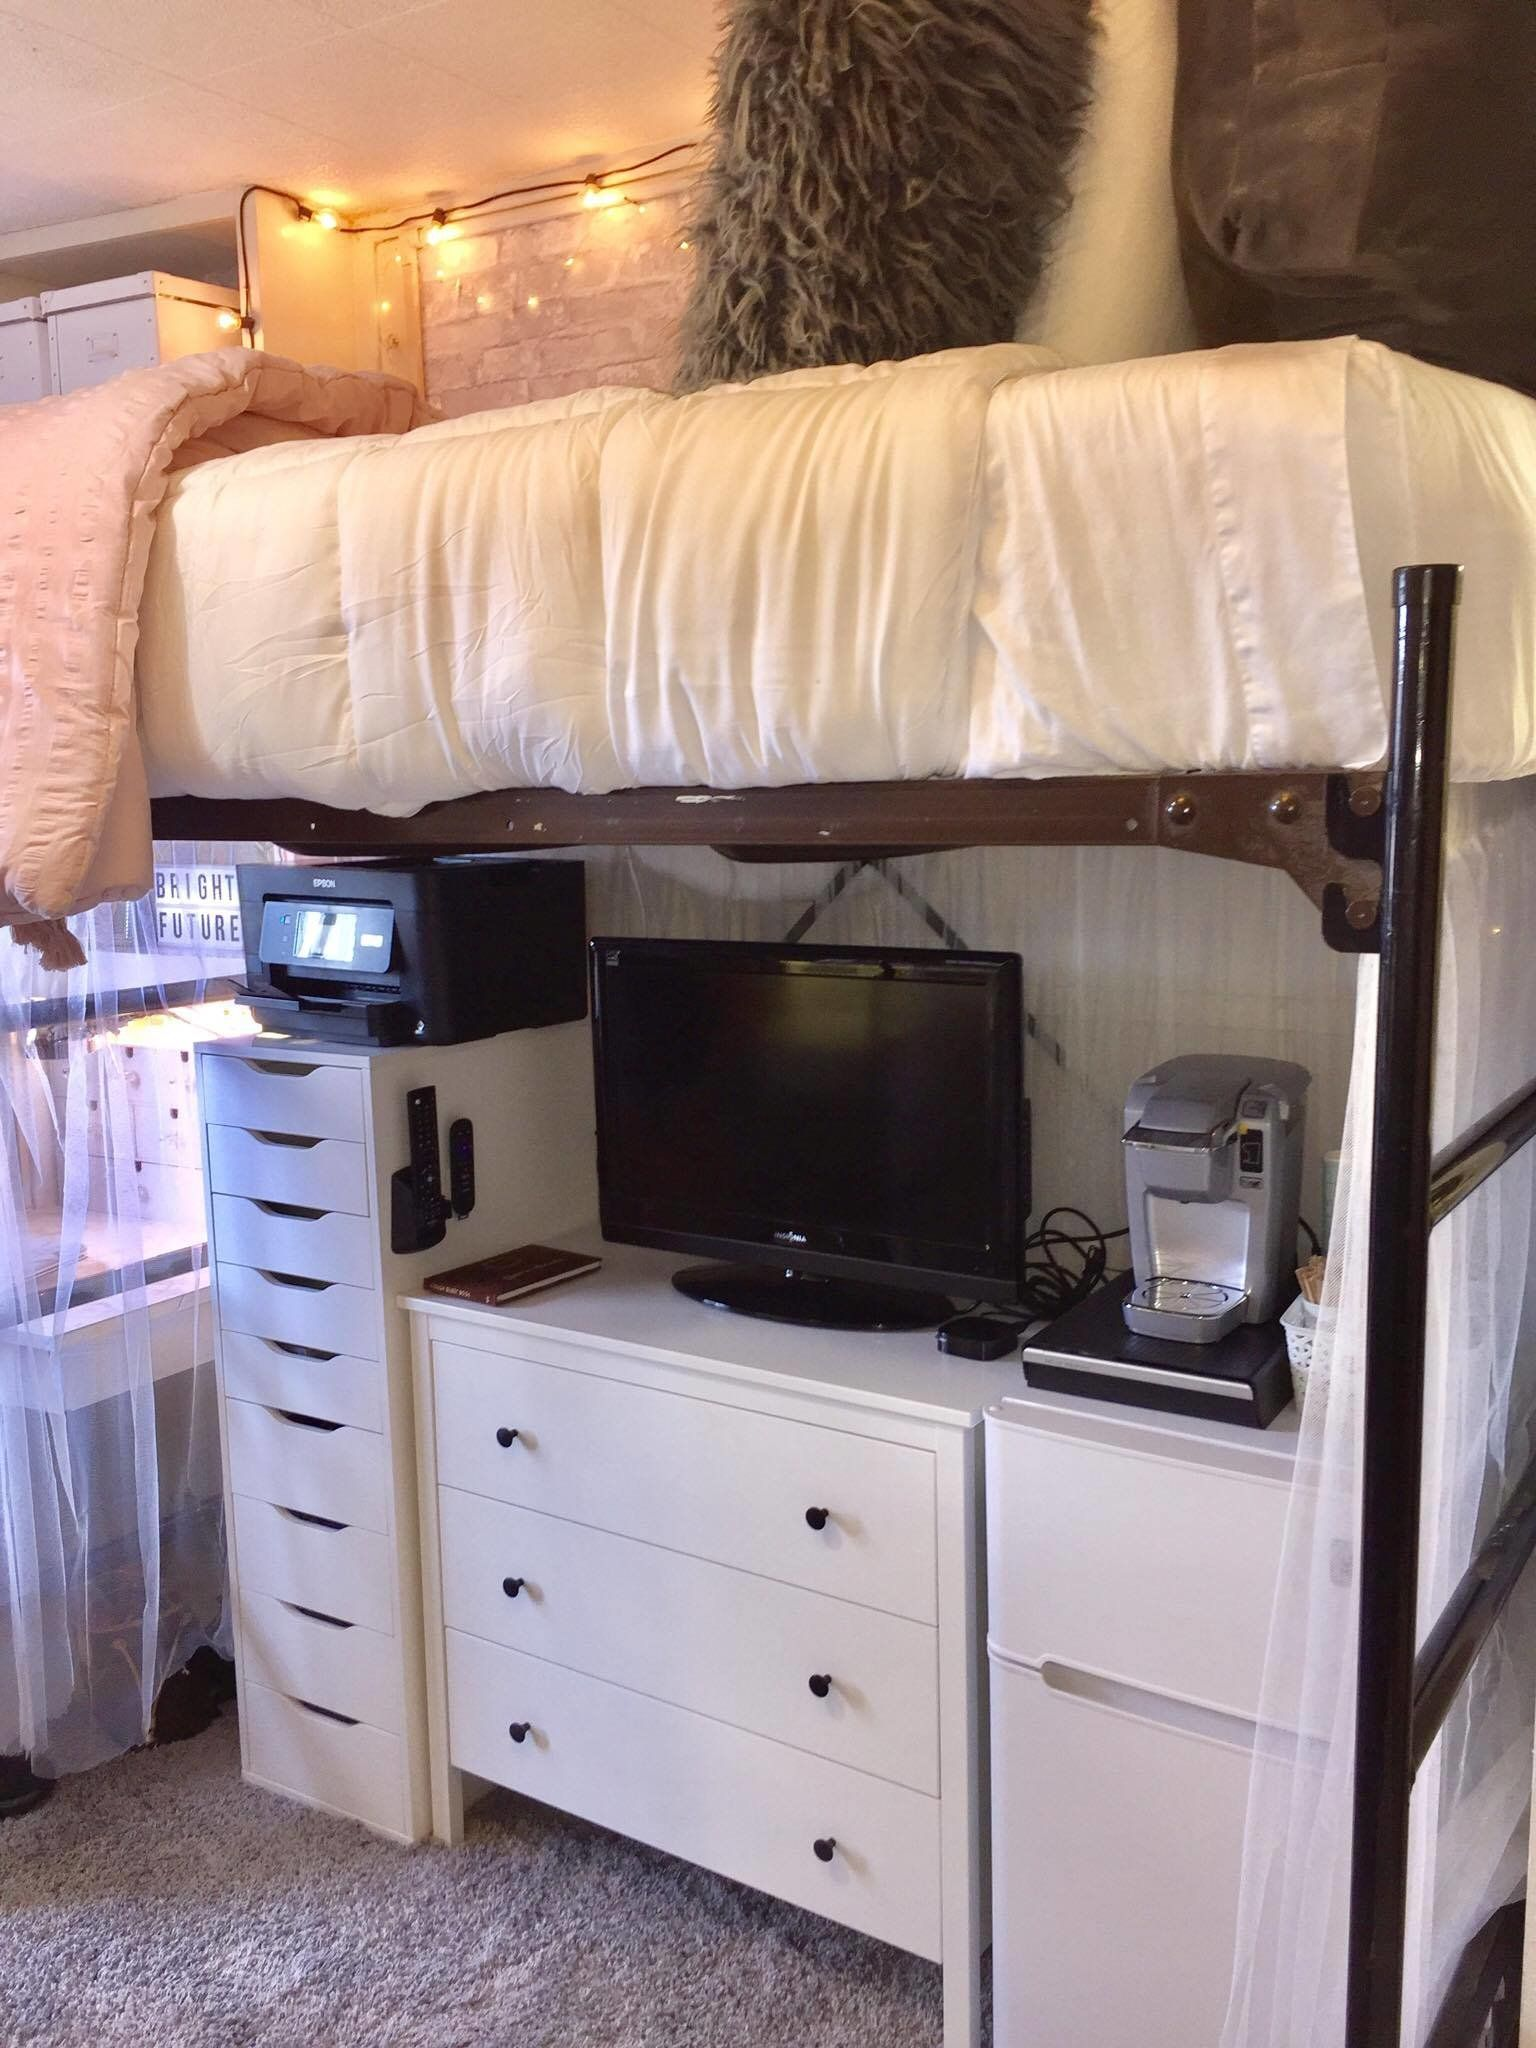 15 incredible dorm room makeovers that will make you want